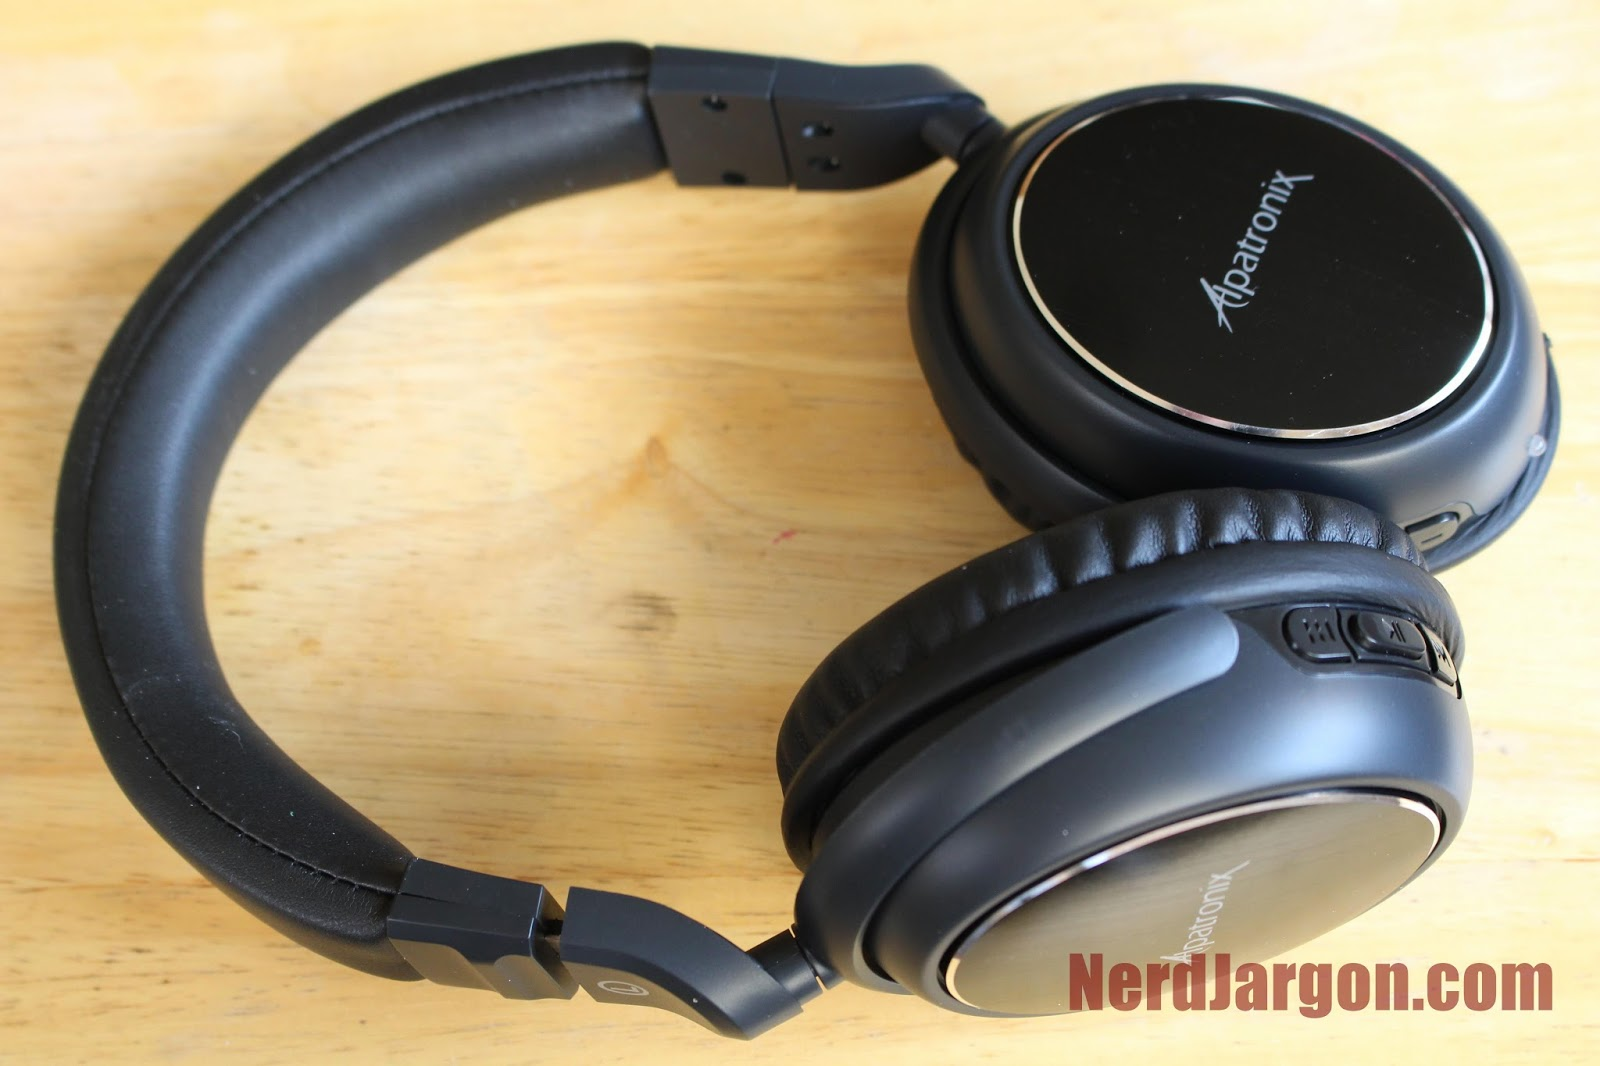 Alpatronix HX100 Stereo Bluetooth 2.0 Headphones: Product Link